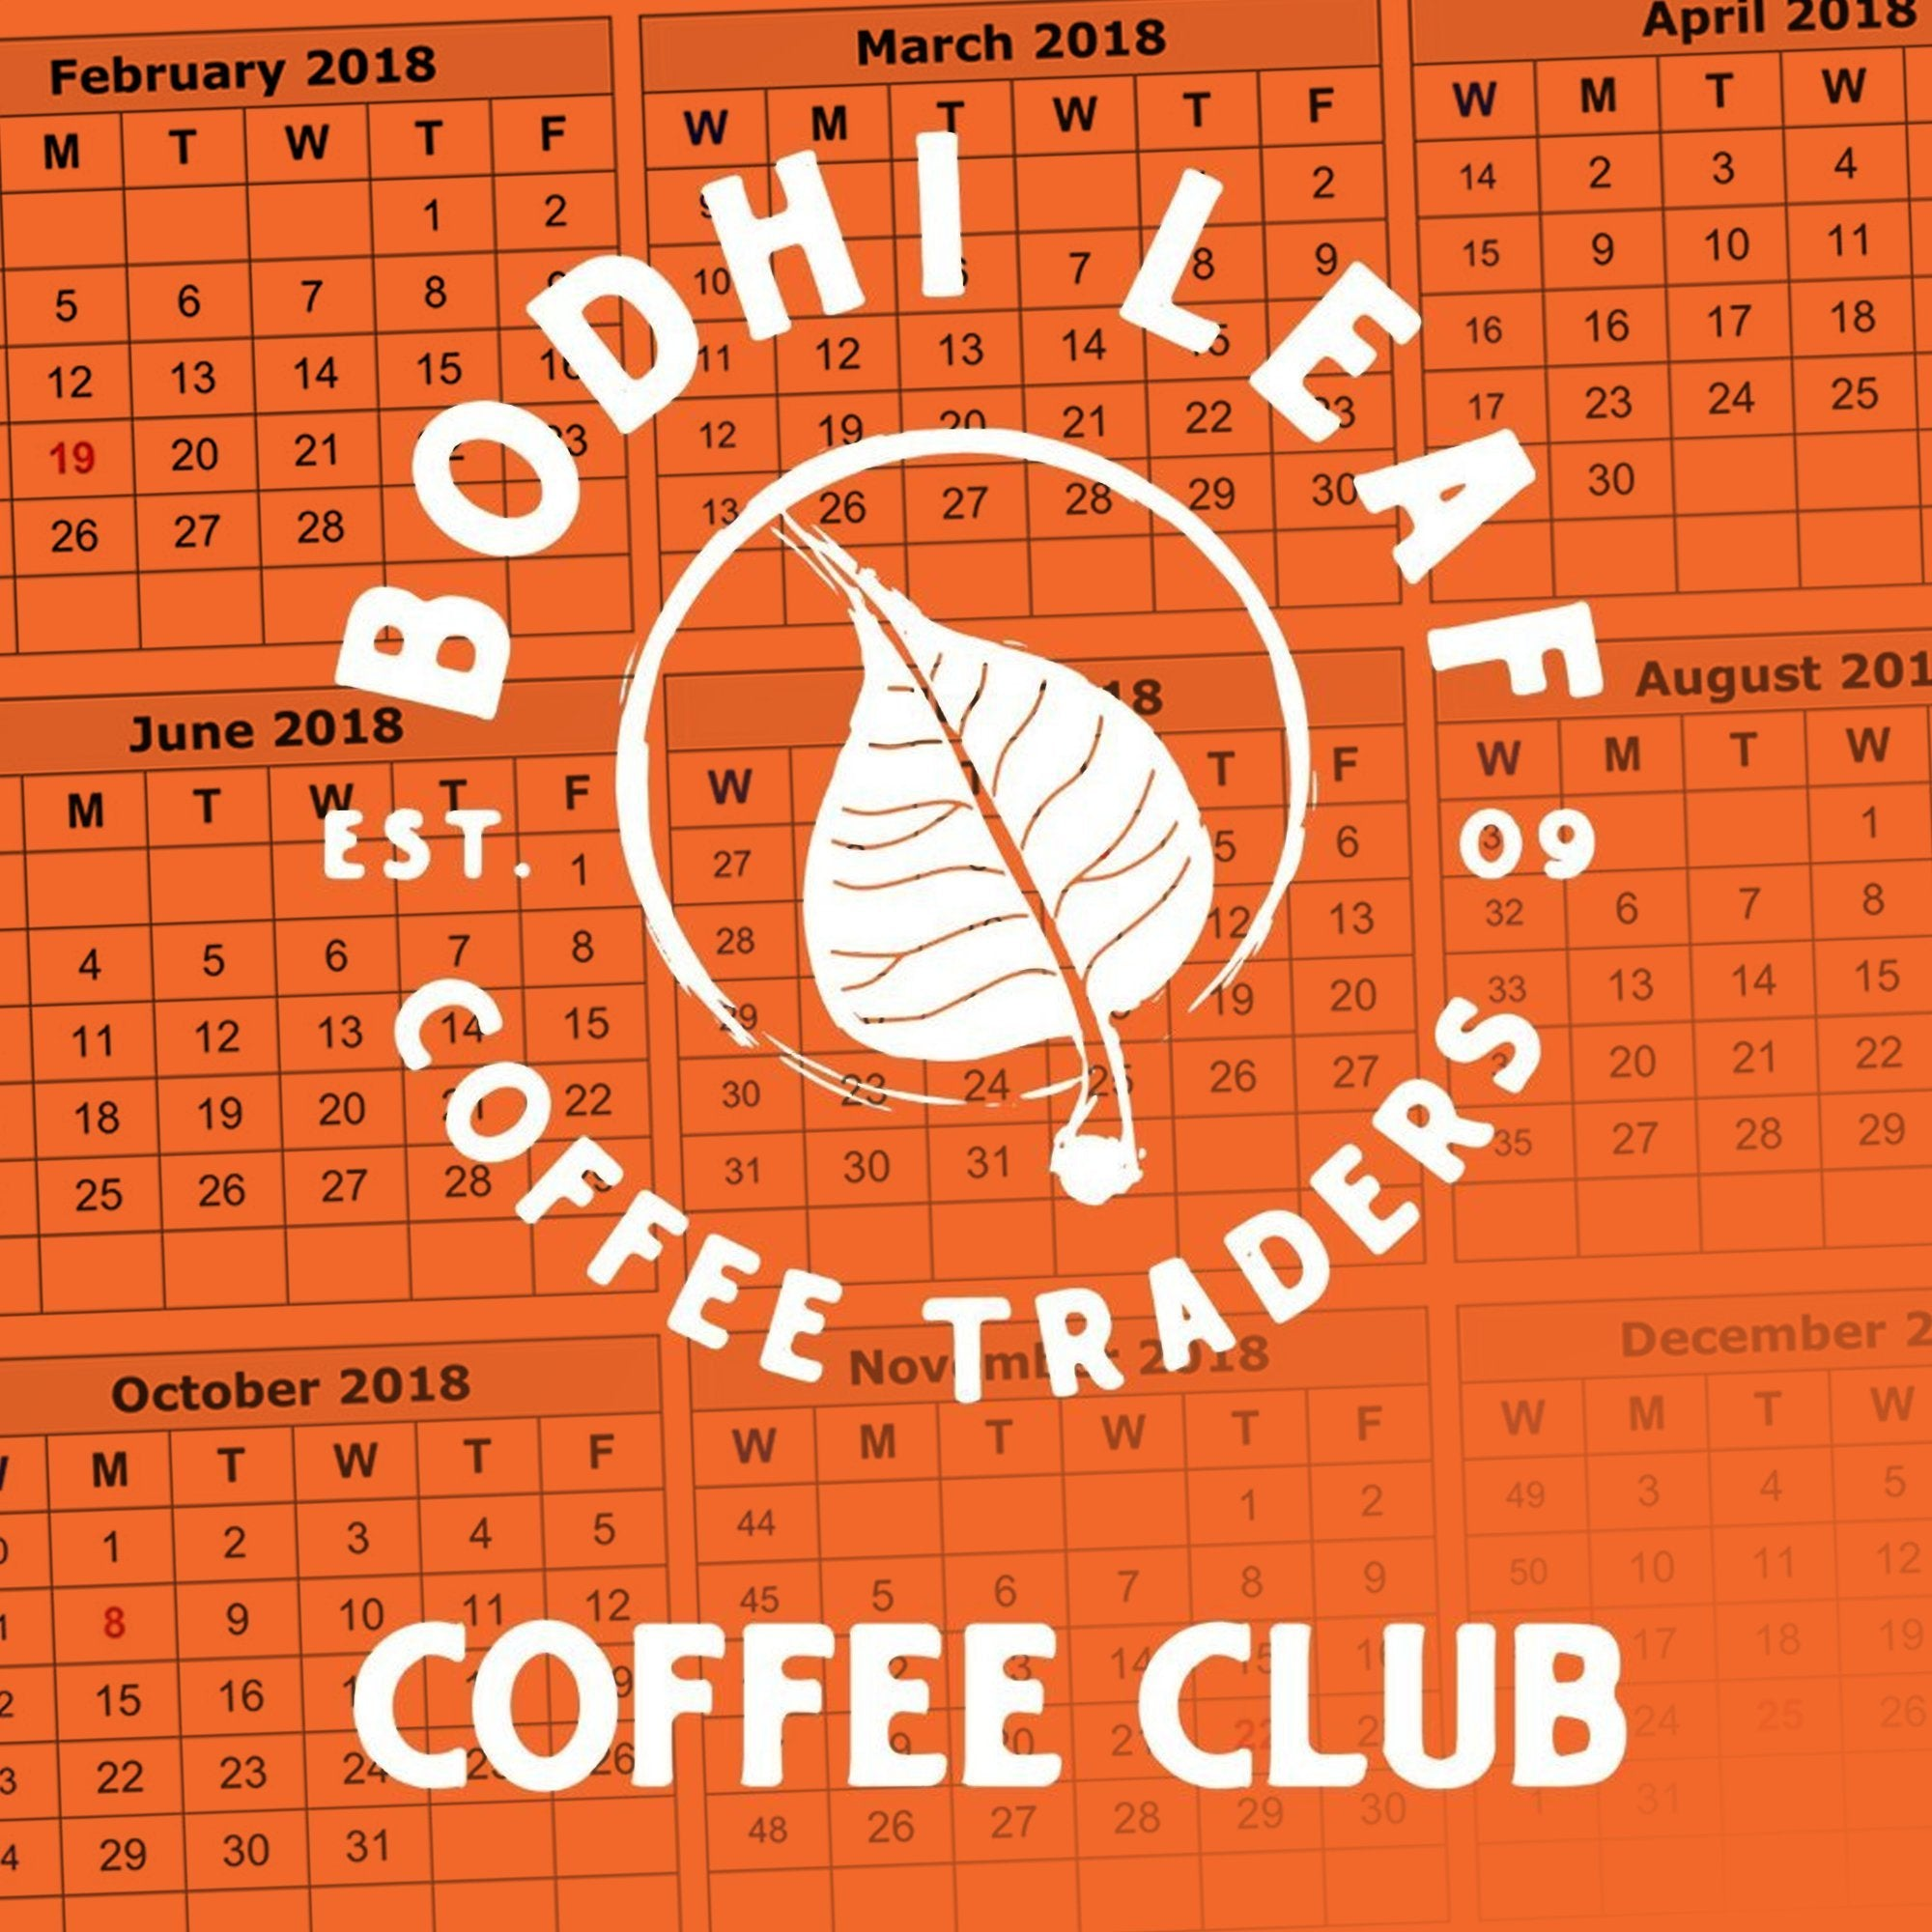 Bodhi Office Club - Recurring 5 LB Coffee Subscription